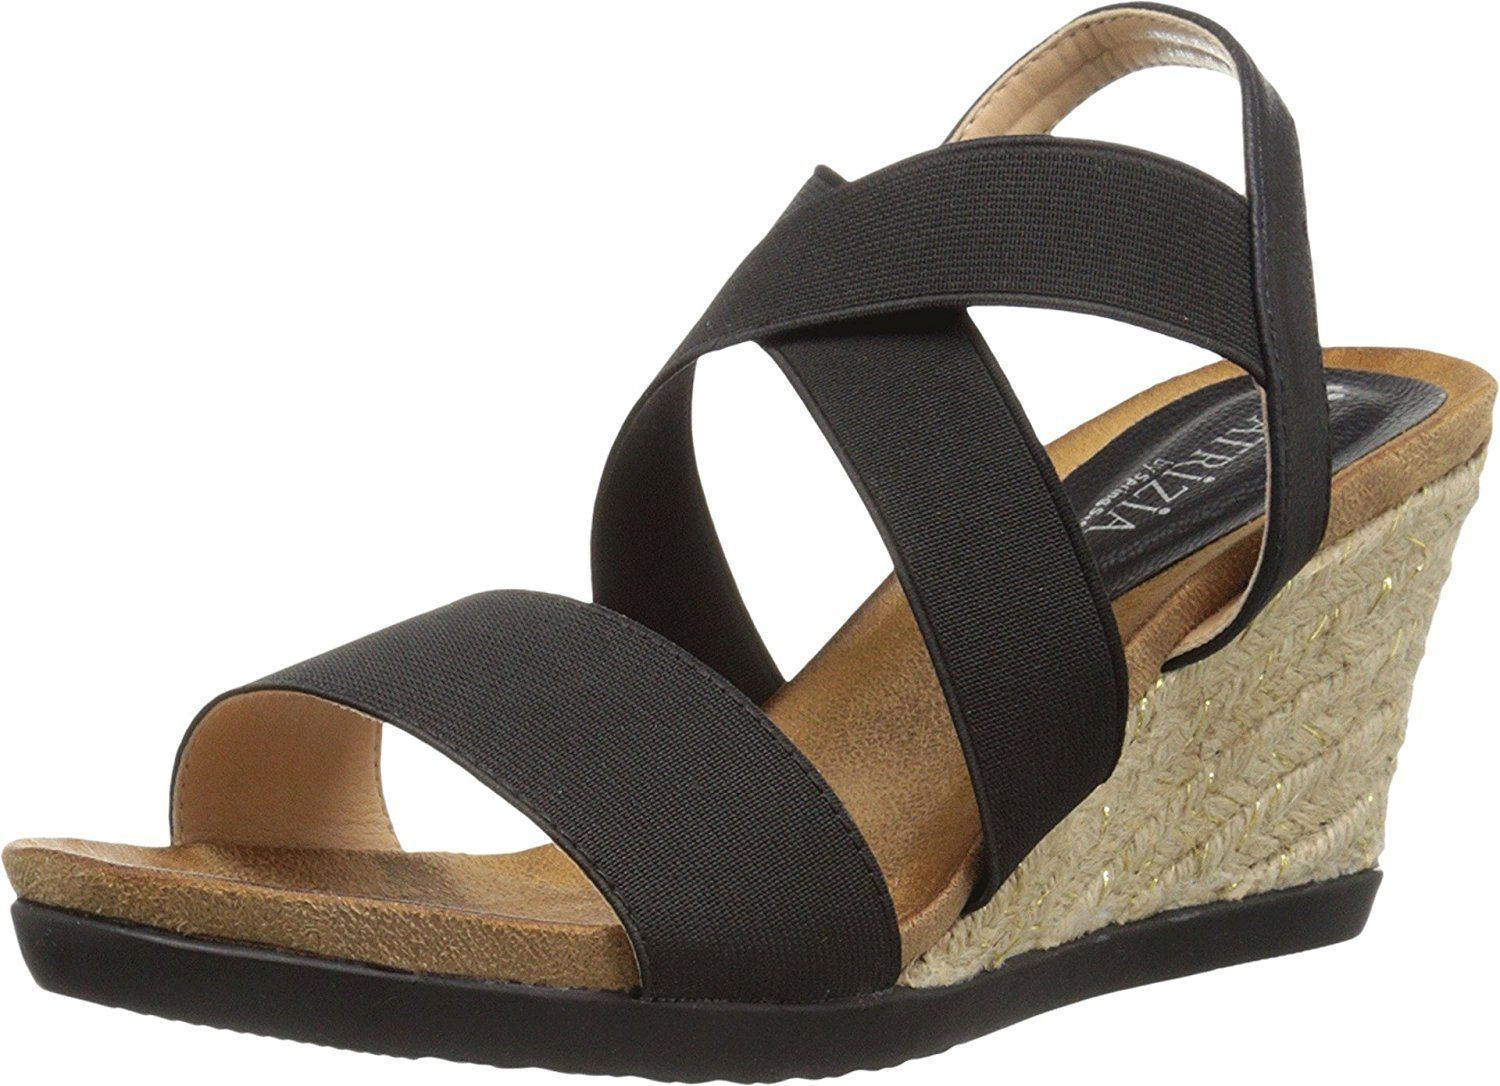 PATRIZIA Women's Jona ** You can get additional details at the image link.